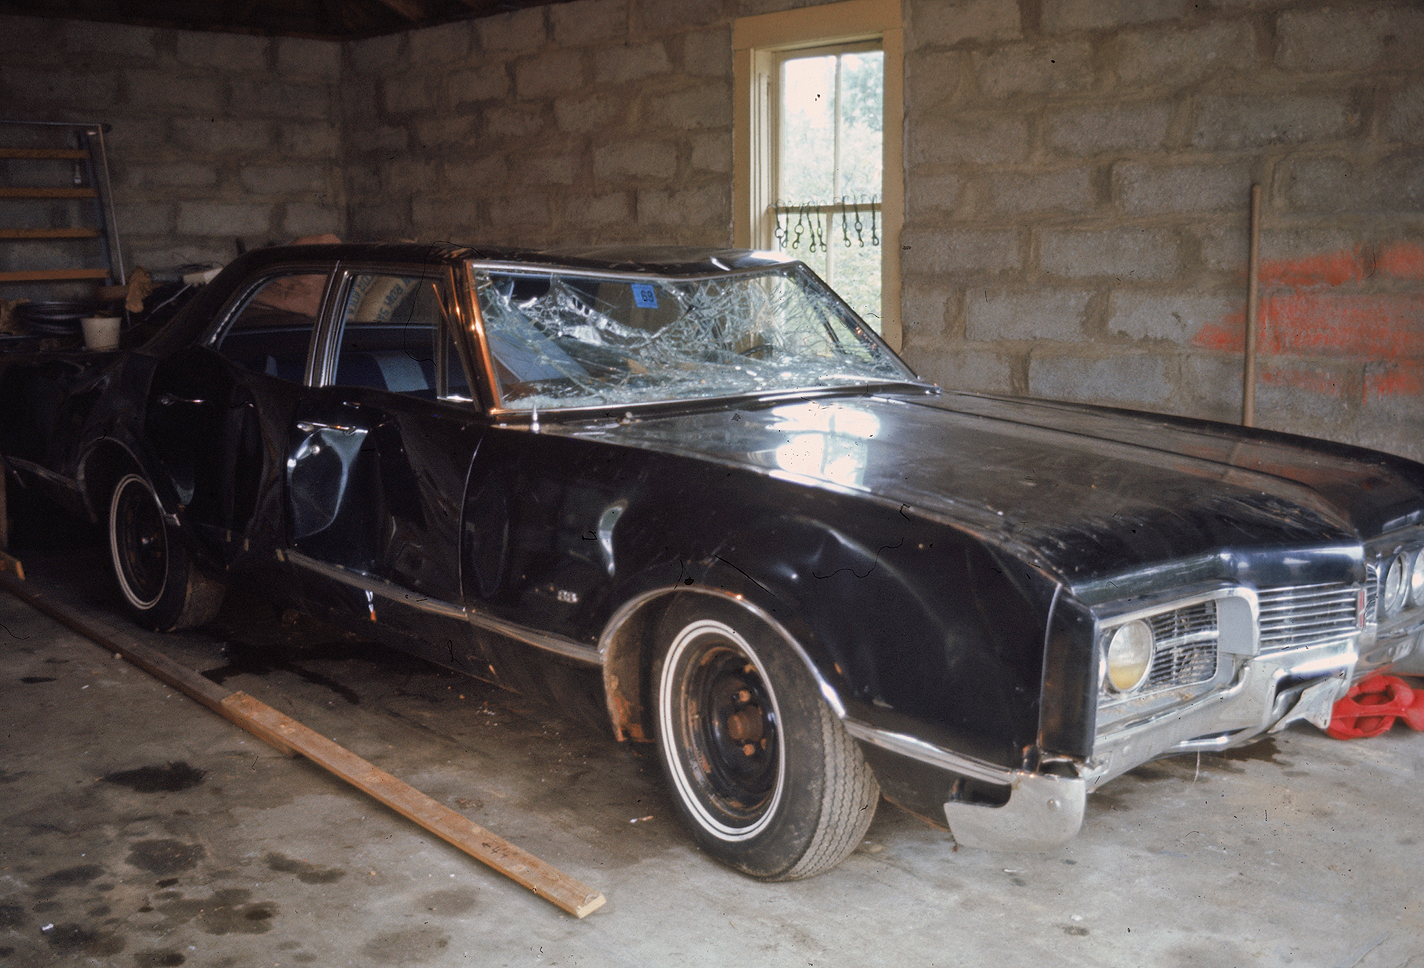 Kennedy's Car After Chappaquiddick Accident